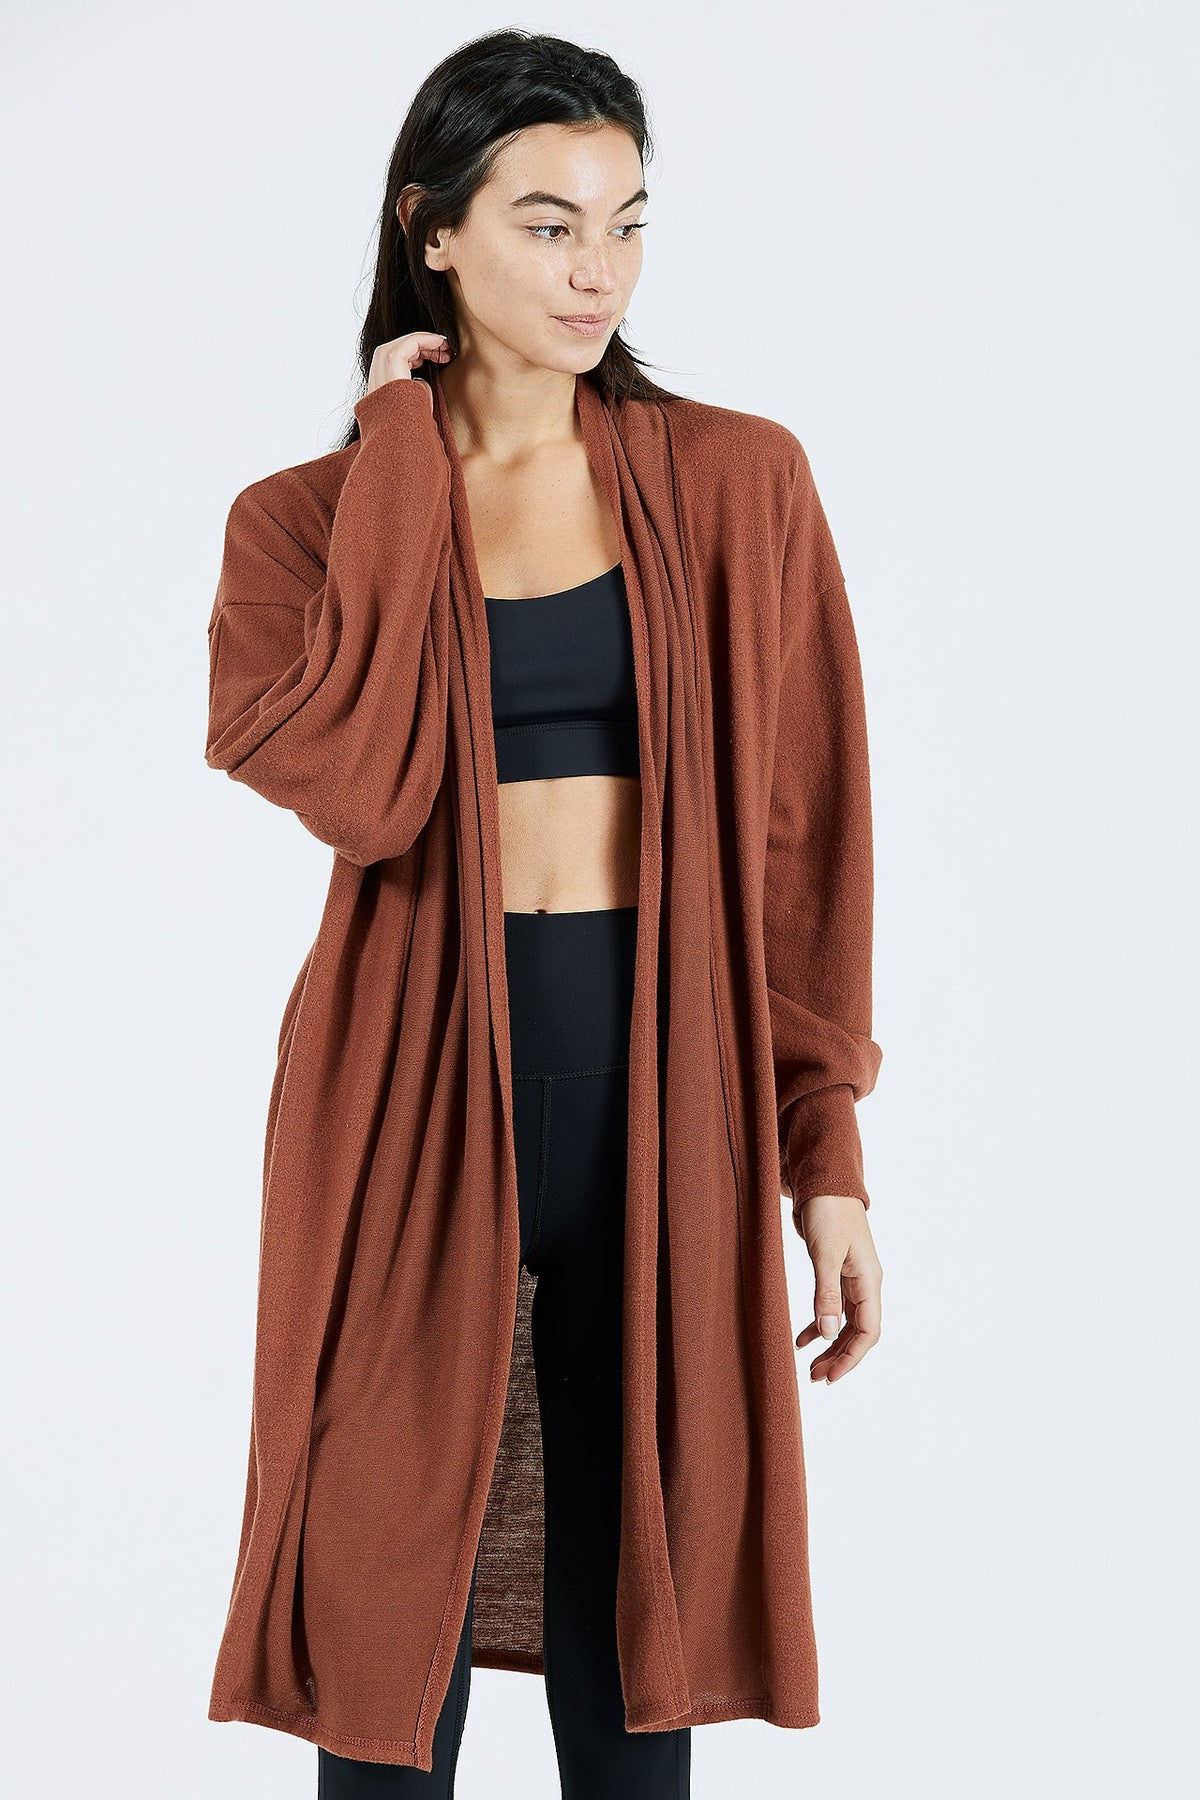 JOAH BROWN Etolie Cardigan